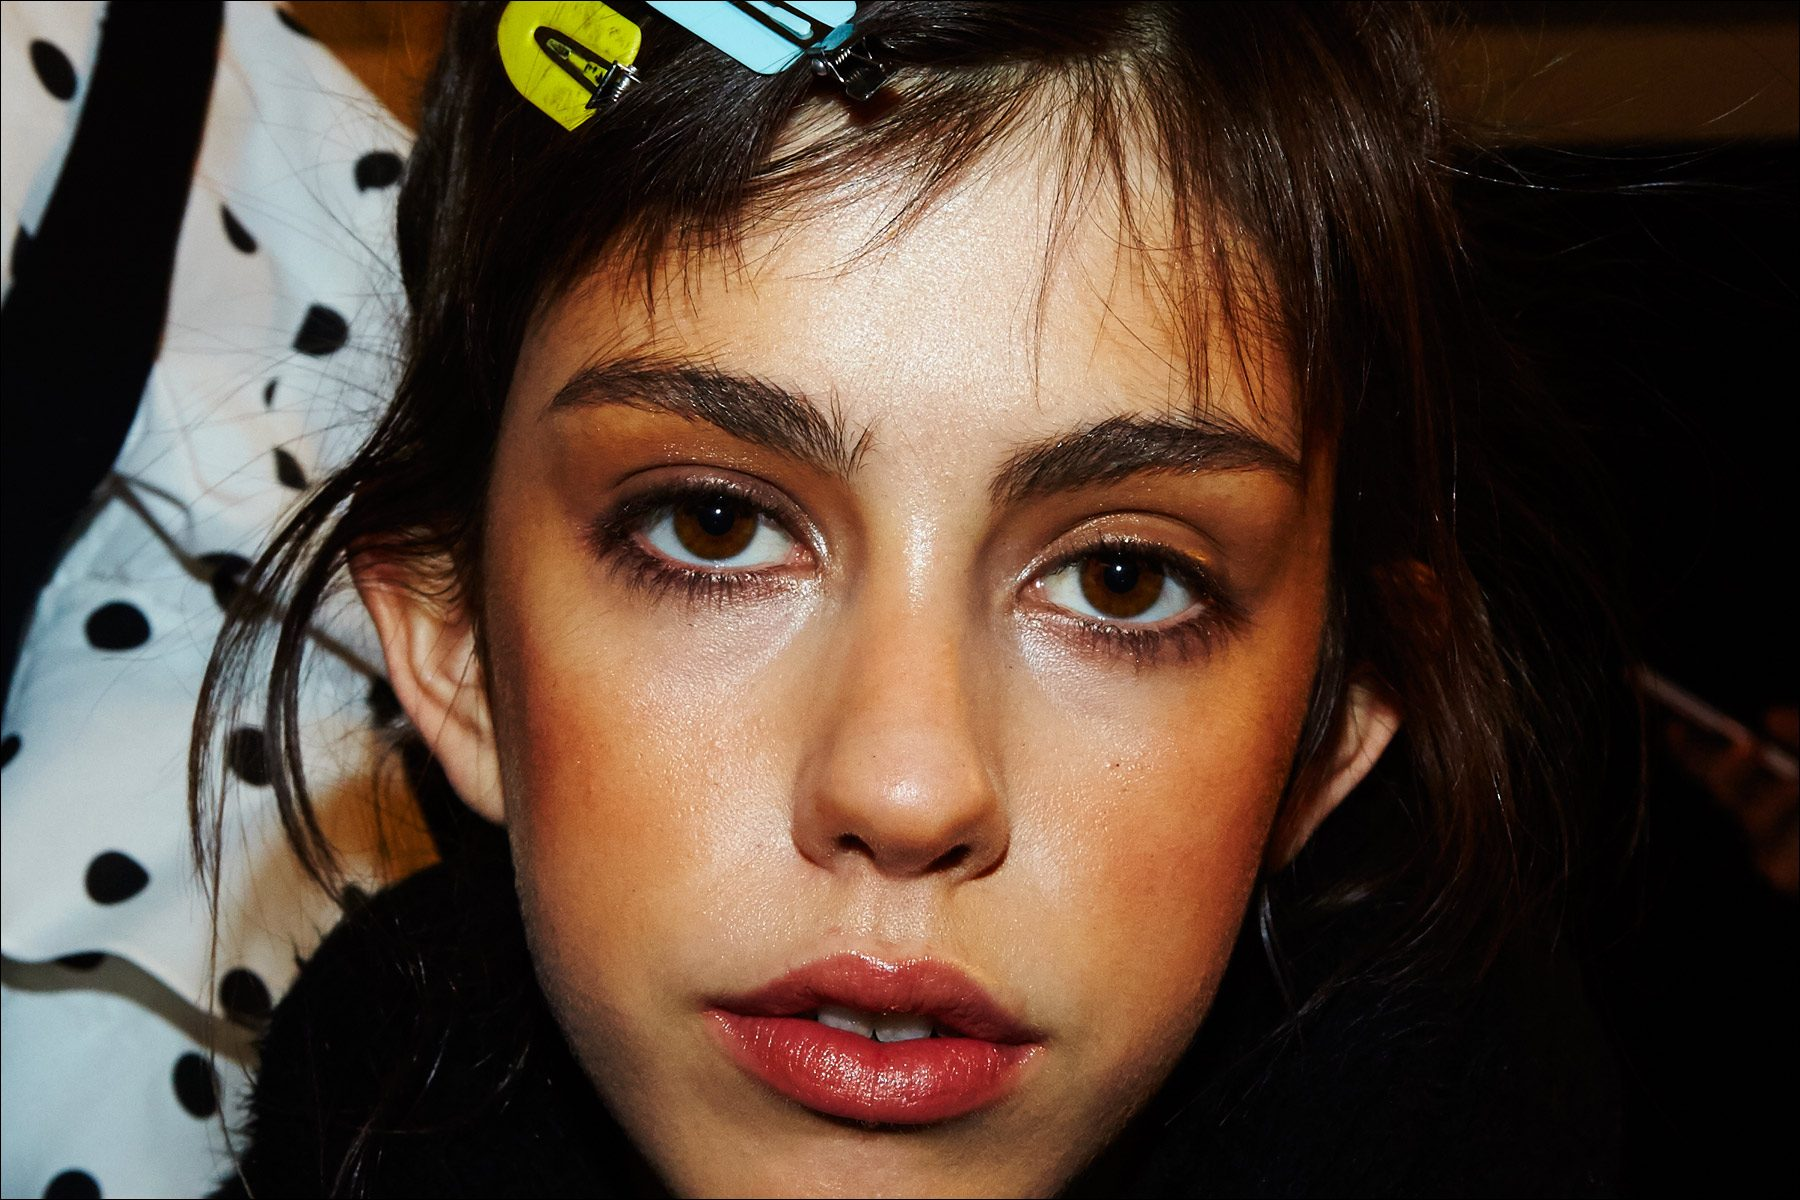 Model Mayka Merino snapped backstage in makeup at Adam Selman Fall 2017 womenswear show in New York City. Photography by Alexander Thompson.